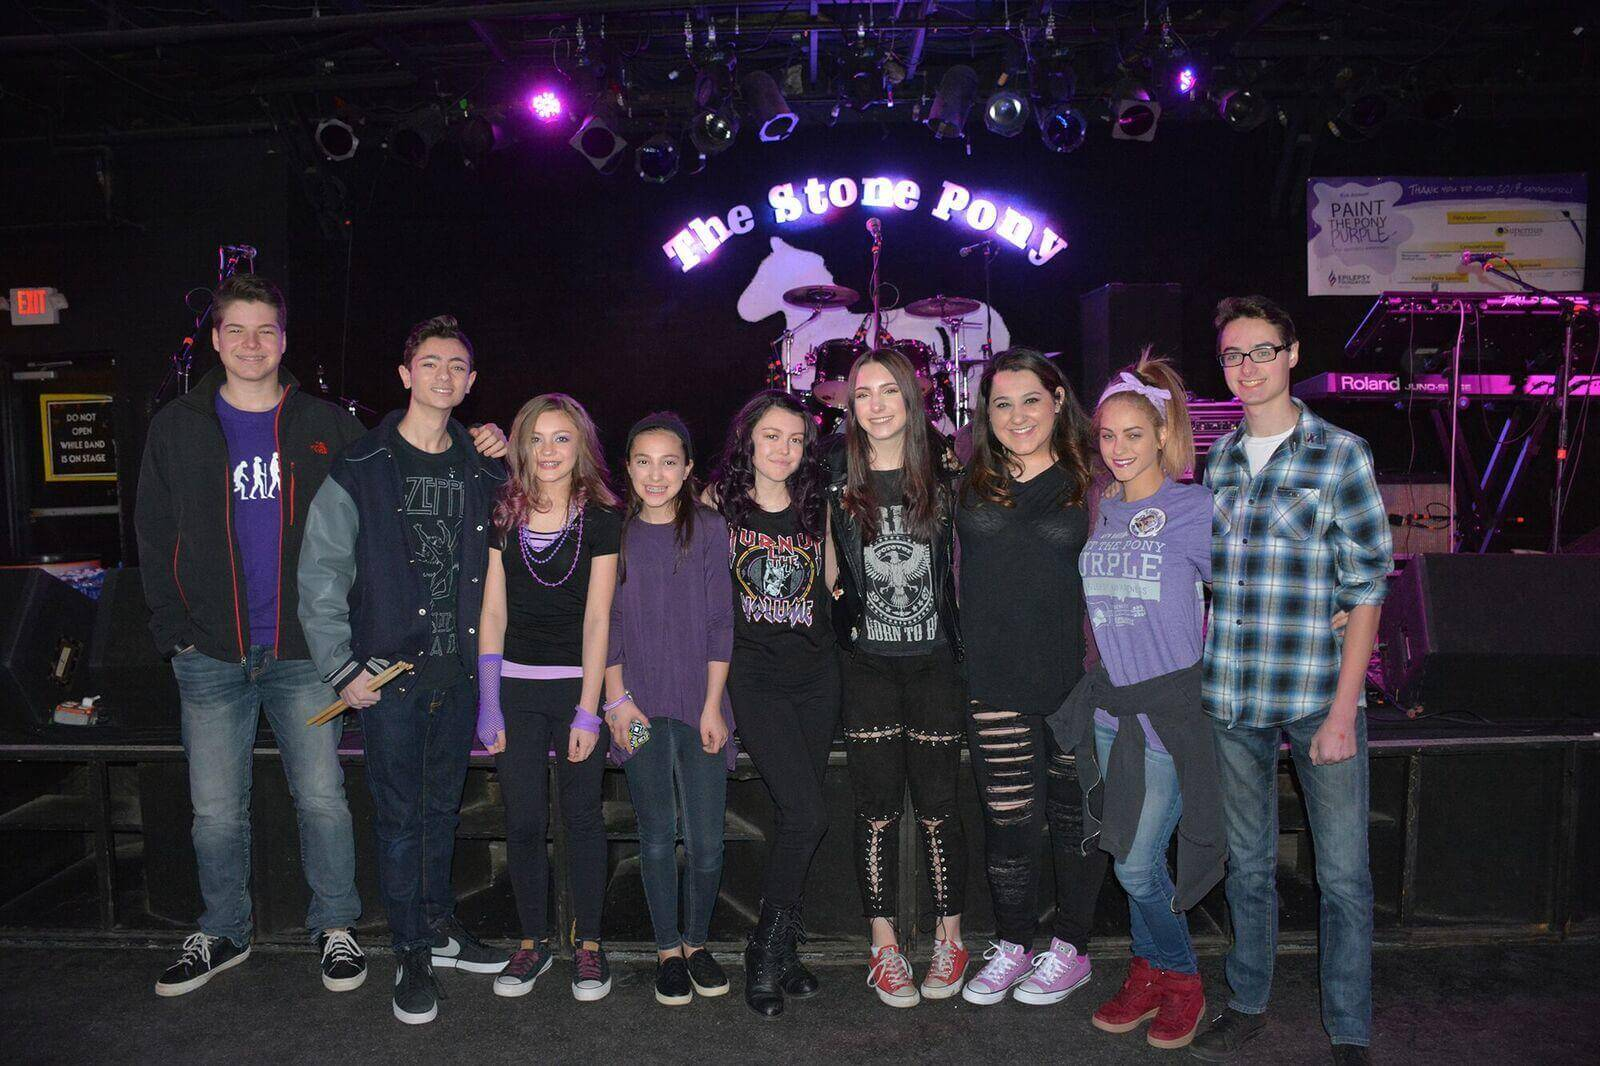 Marlboro School of Rock Future All Star Band at The Stone Pony